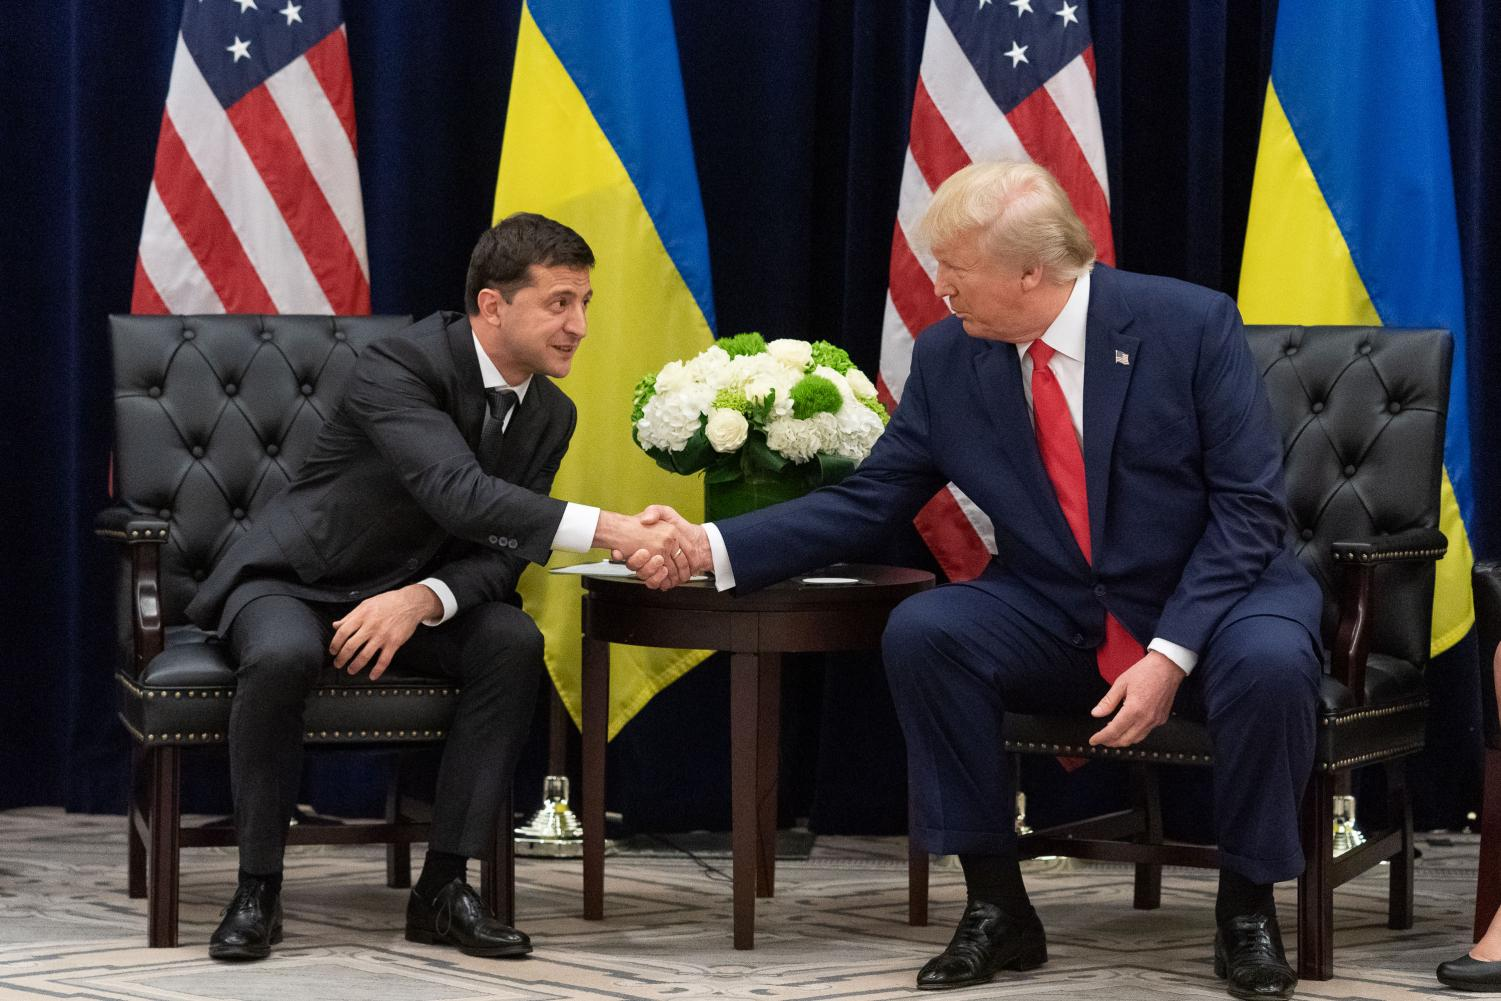 Shaking Ukrainian President Volodymyr Zelensky's hand, US President Donald Trump met with his Ukrainian counterpart in September. A phone call between these two leaders is the primary cause for the articles of impeachment against Donald Trump.